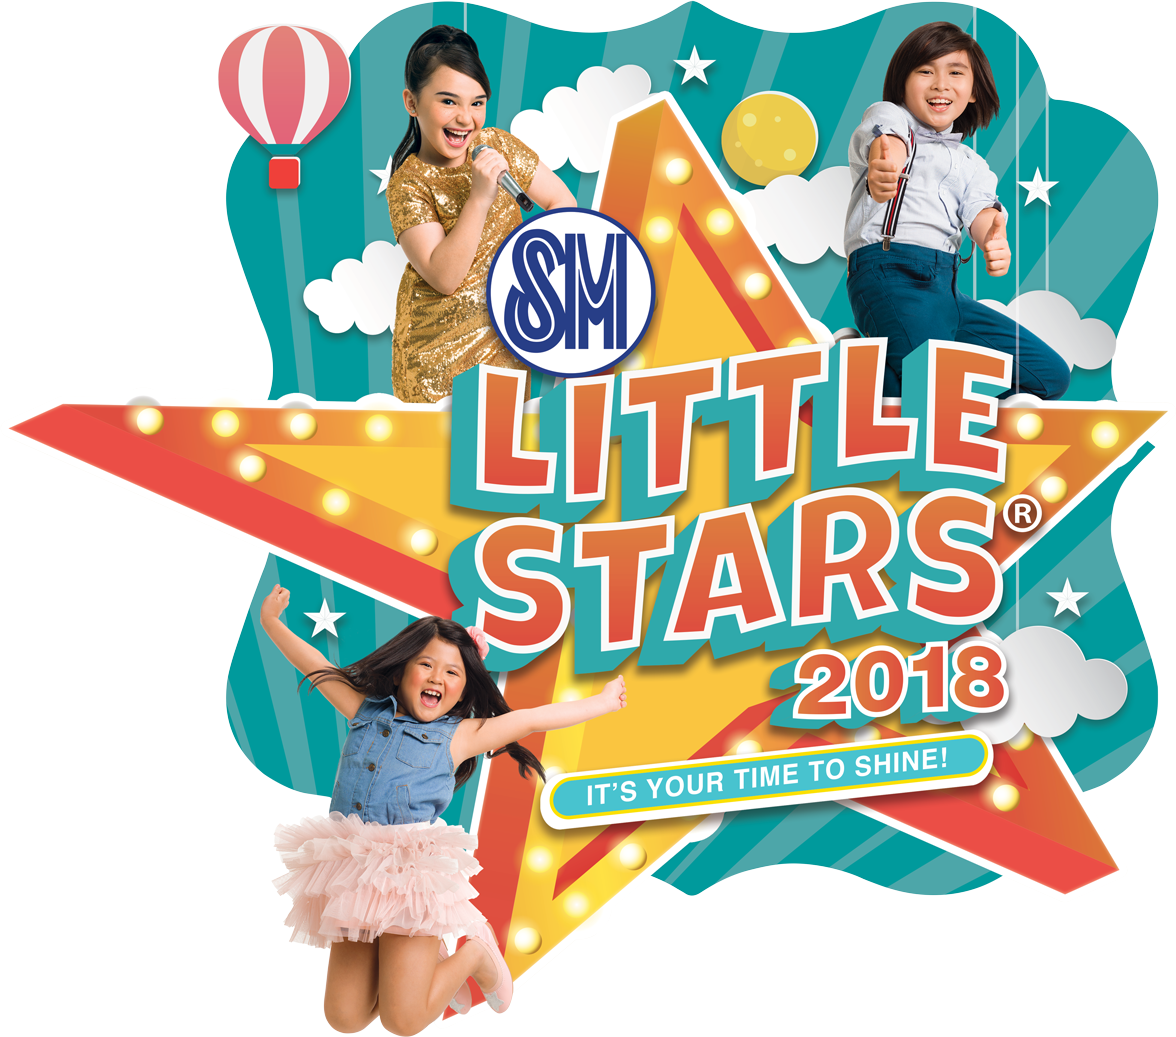 SM Little Stars 2018 audition starts this April in Puerto